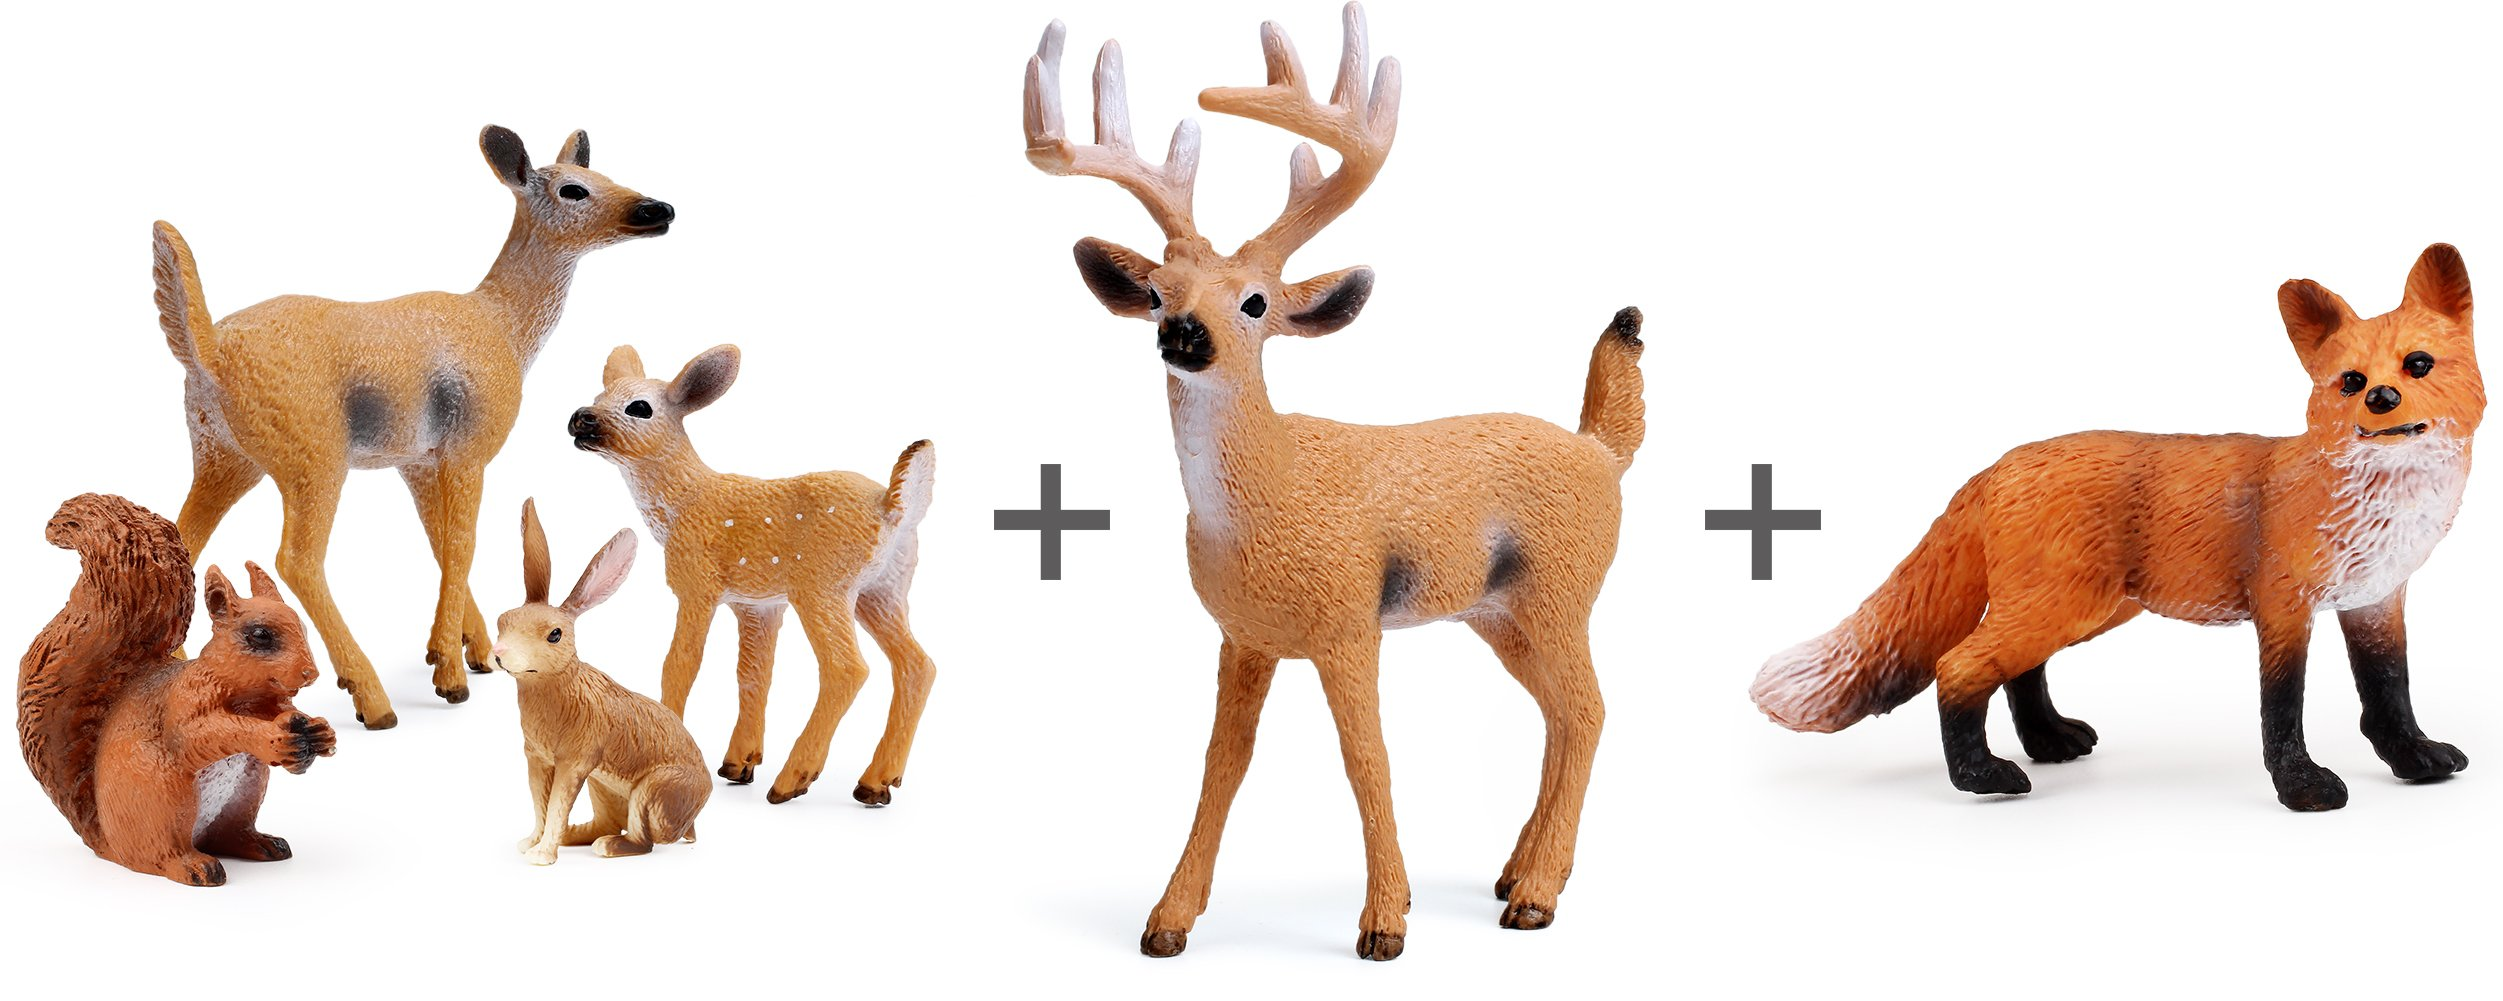 Miniature Deer Family Toy Figurines with Forest Animal Babies Set, Includes a Buck, Doe, Fawn, Rabbit, Squirrel and Fox by Uandme (Image #1)